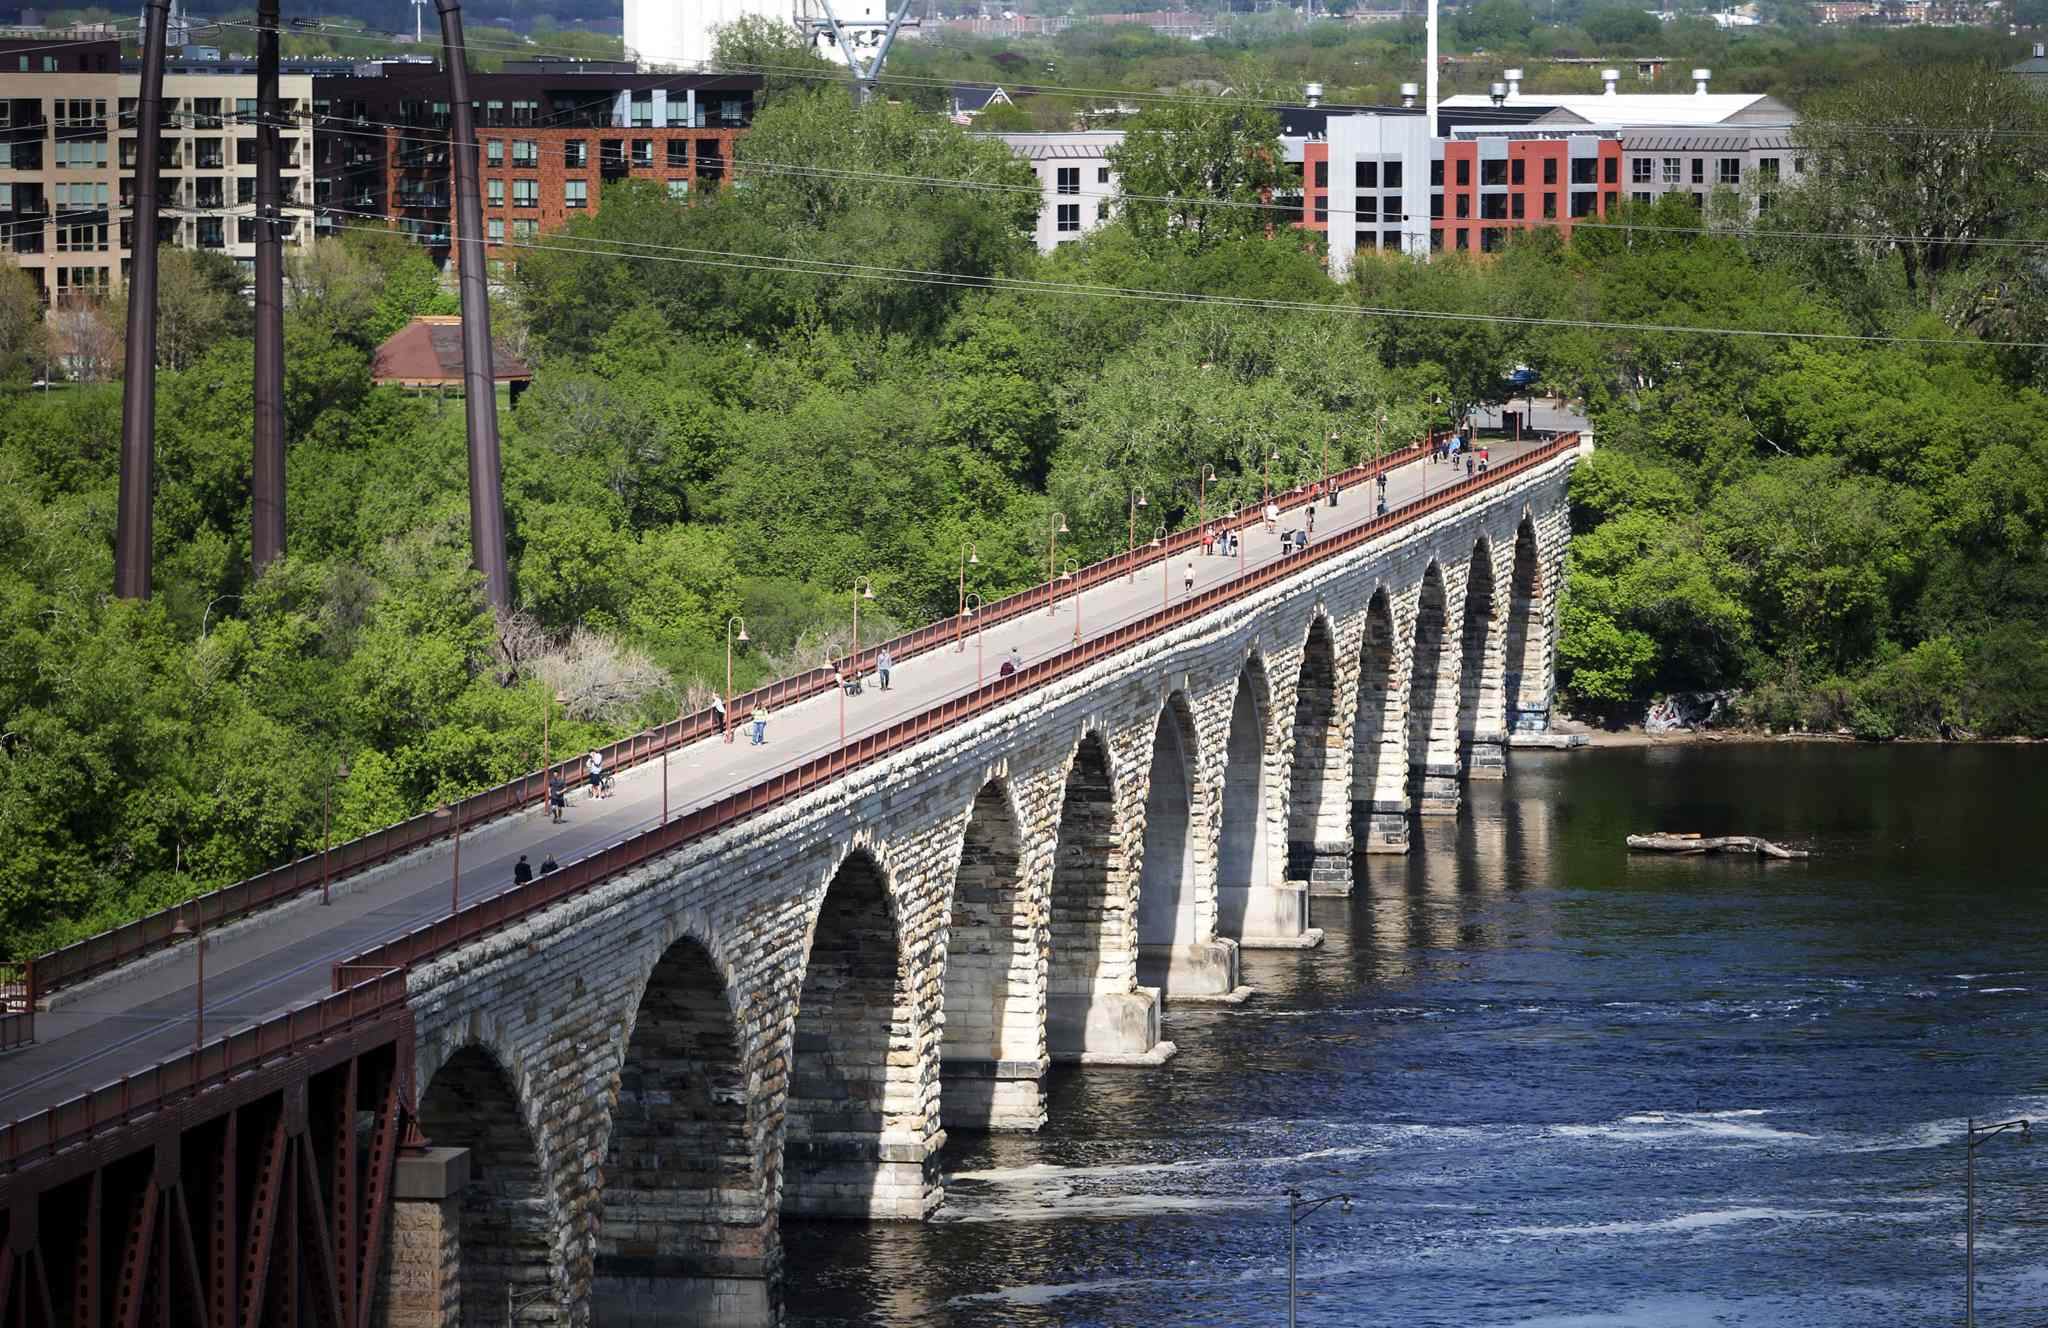 A view of the Stone Arch Bridge from atop the North Star Woolen Mill in Minneapolis.